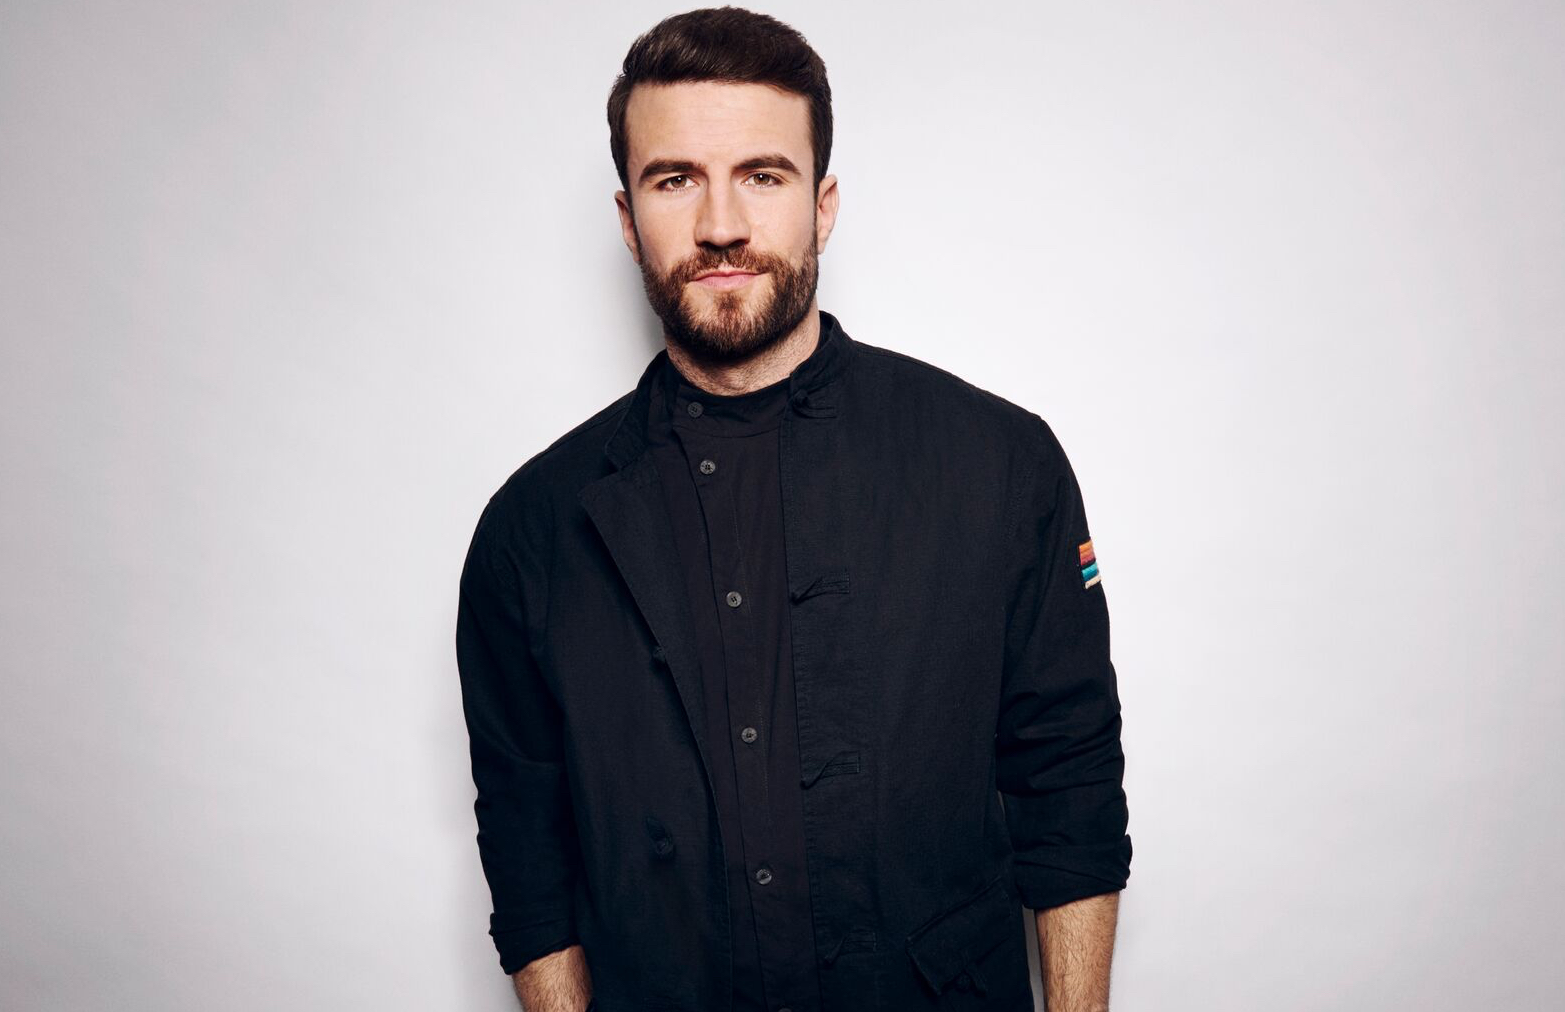 Sam Hunt Teases at New Music During Press Conference